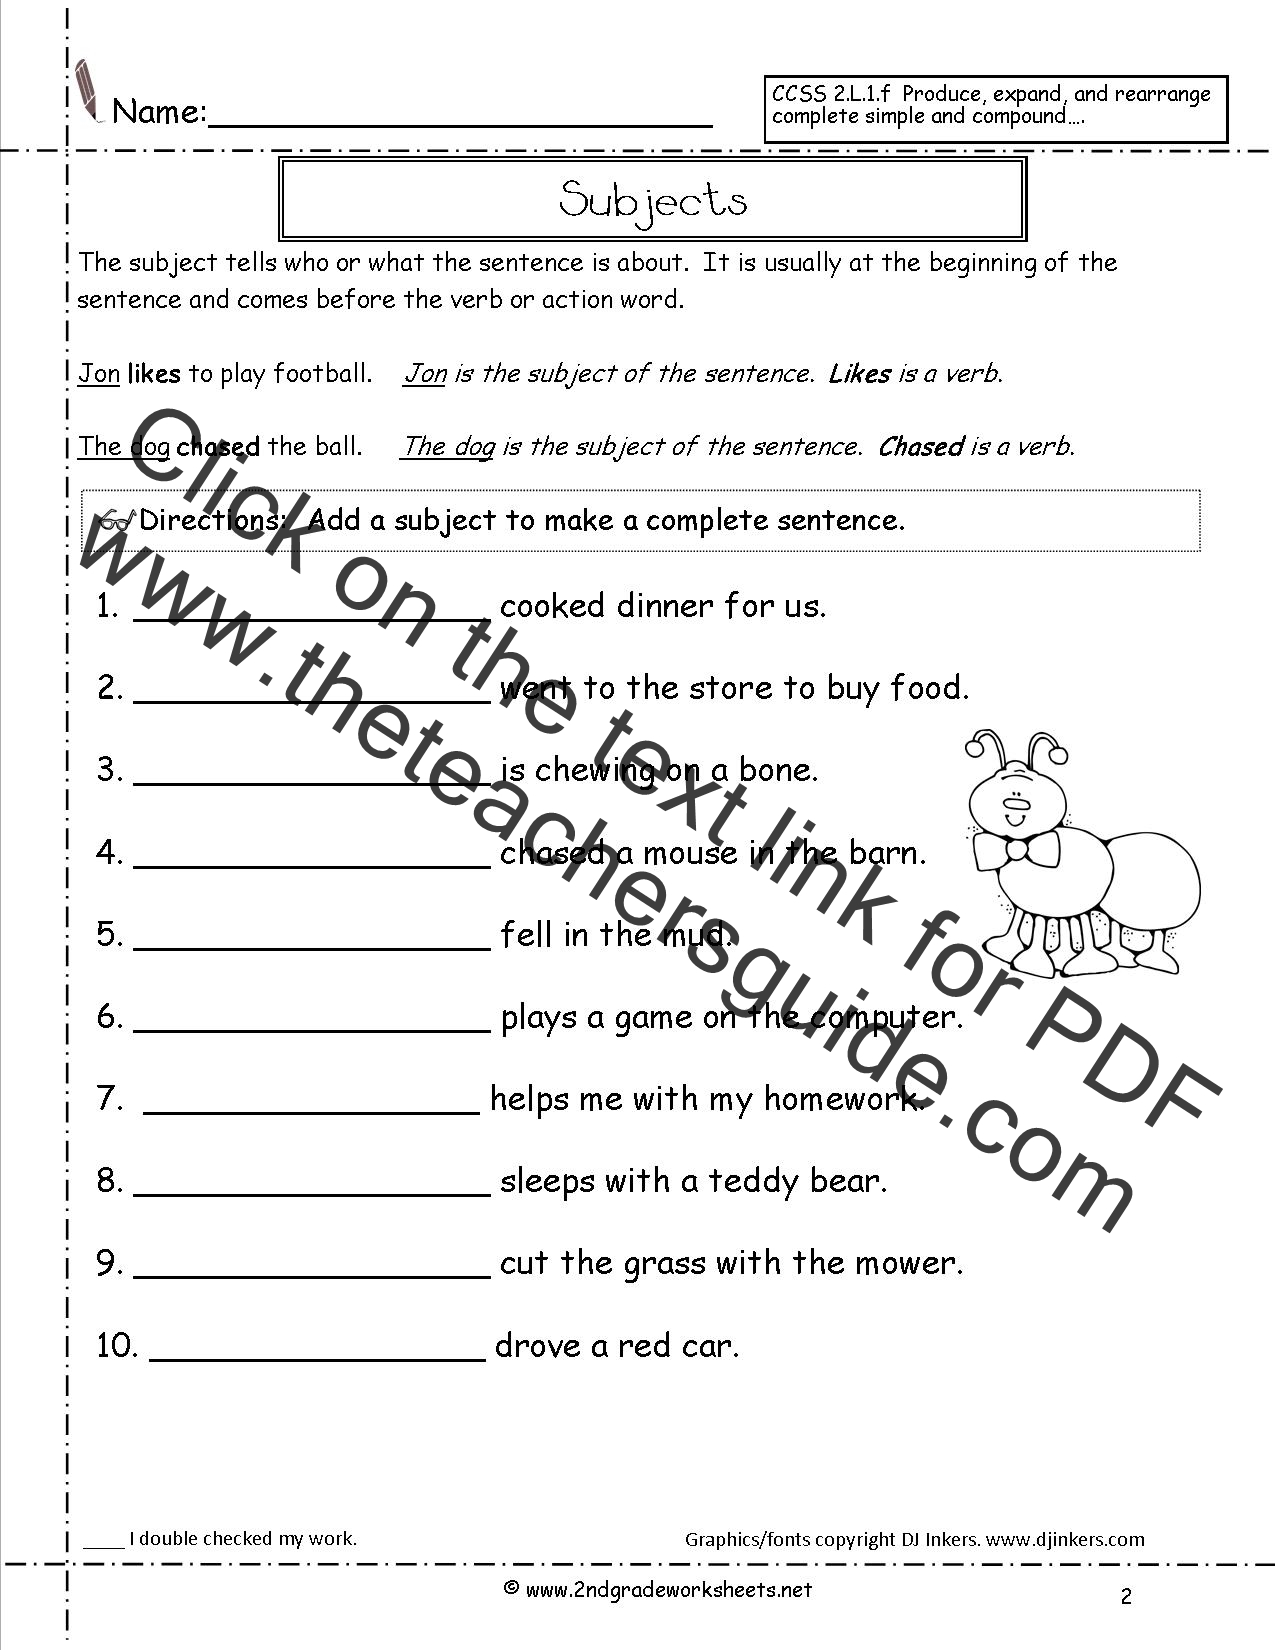 Worksheets Four Types Of Sentences Worksheets second grade sentences worksheets ccss 2 l 1 f subjects worksheet sentence subjects